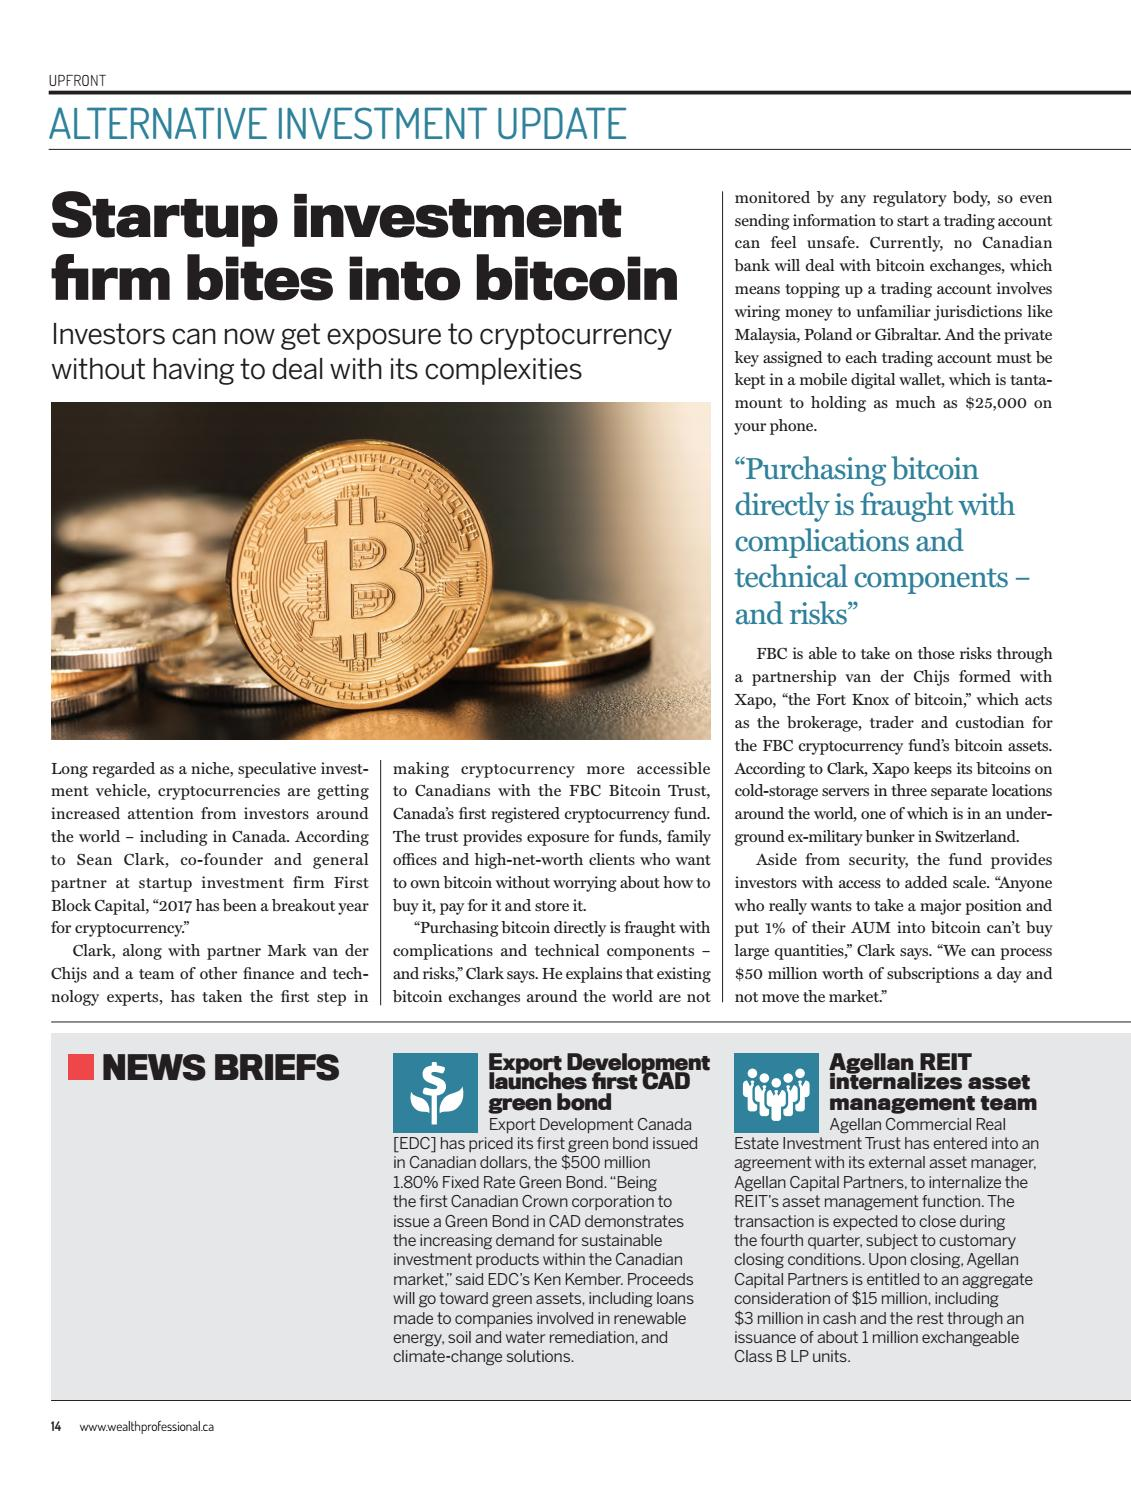 cryptocurrency capital investment firm regulations